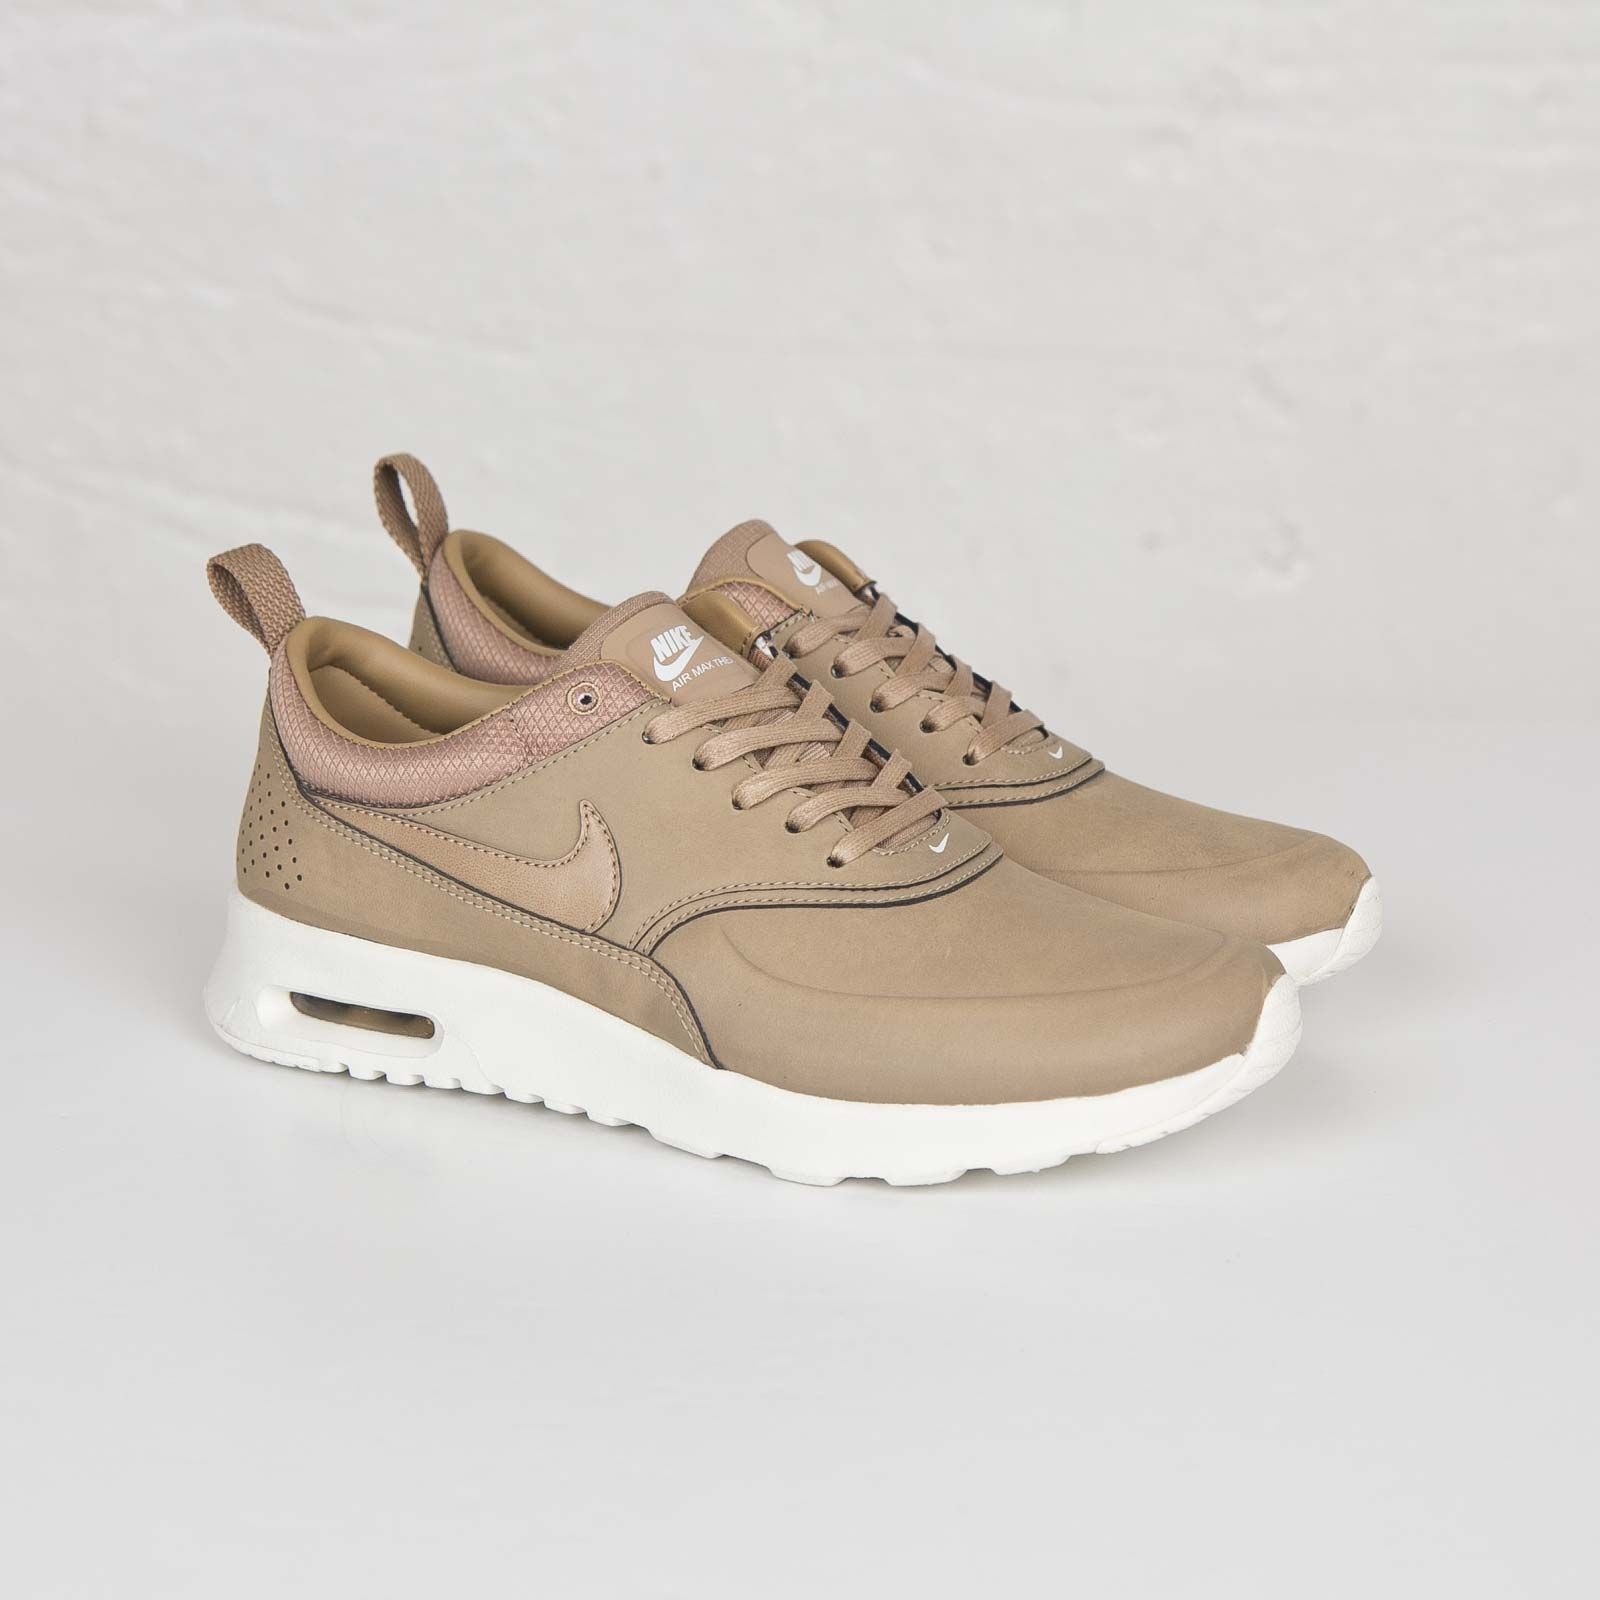 Nike Air Max Thea discounts Womens Mens Brown Desert Official Leather Piemium